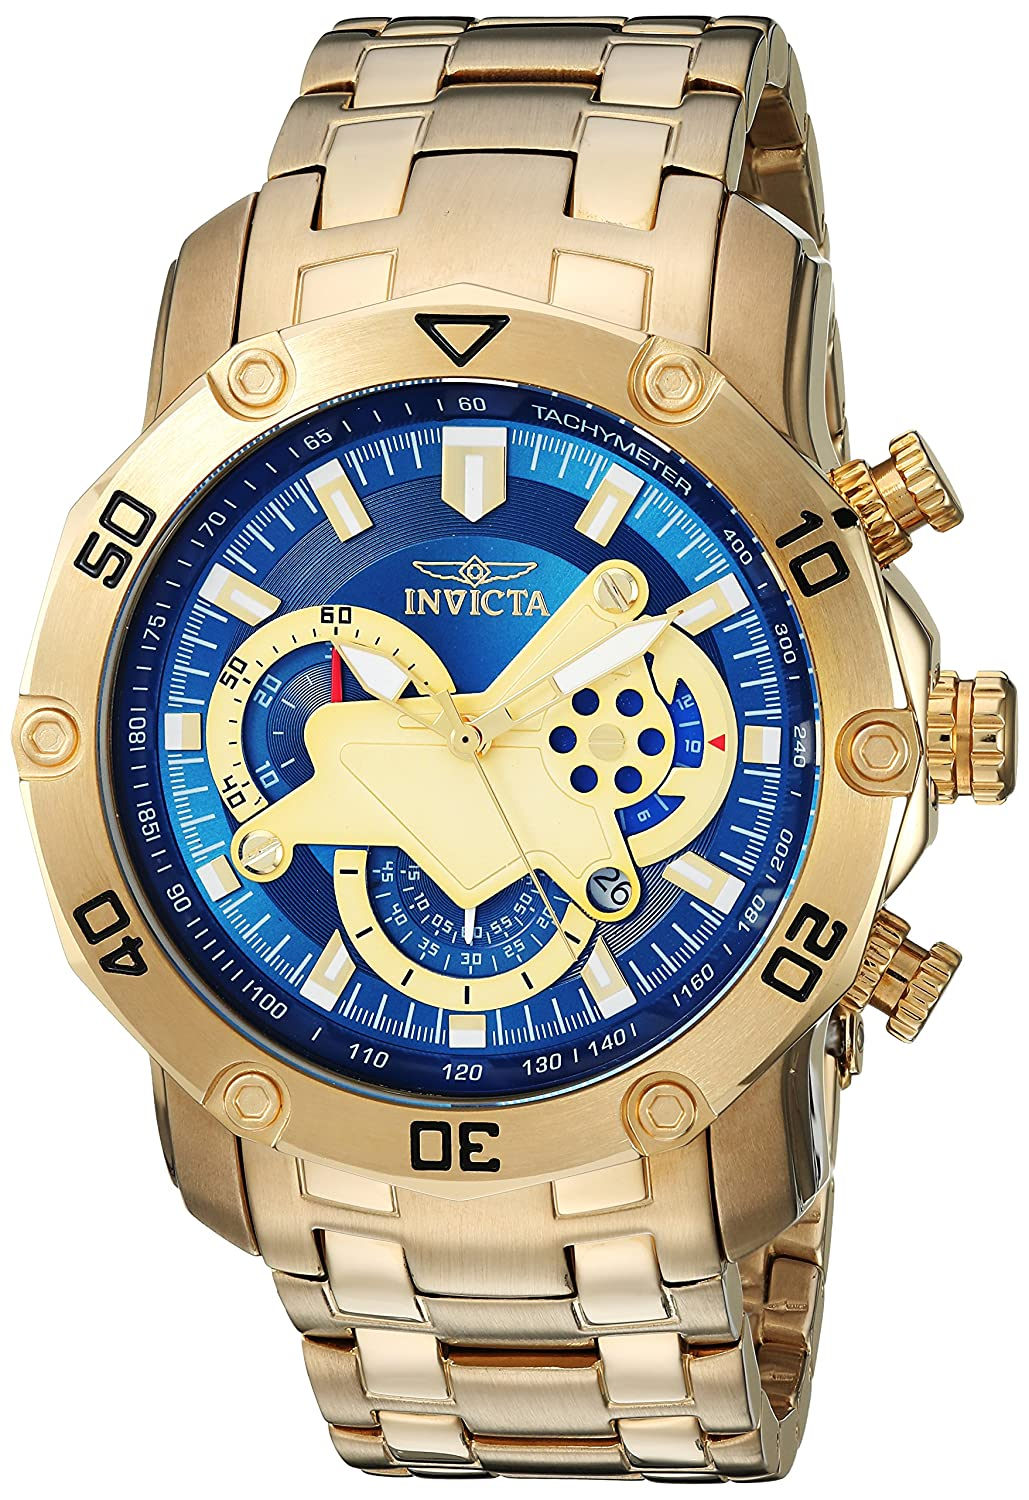 Invicta Men s Pro Diver Quartz Watch with Stainless-Steel Strap, Gold, 26 Model 22765